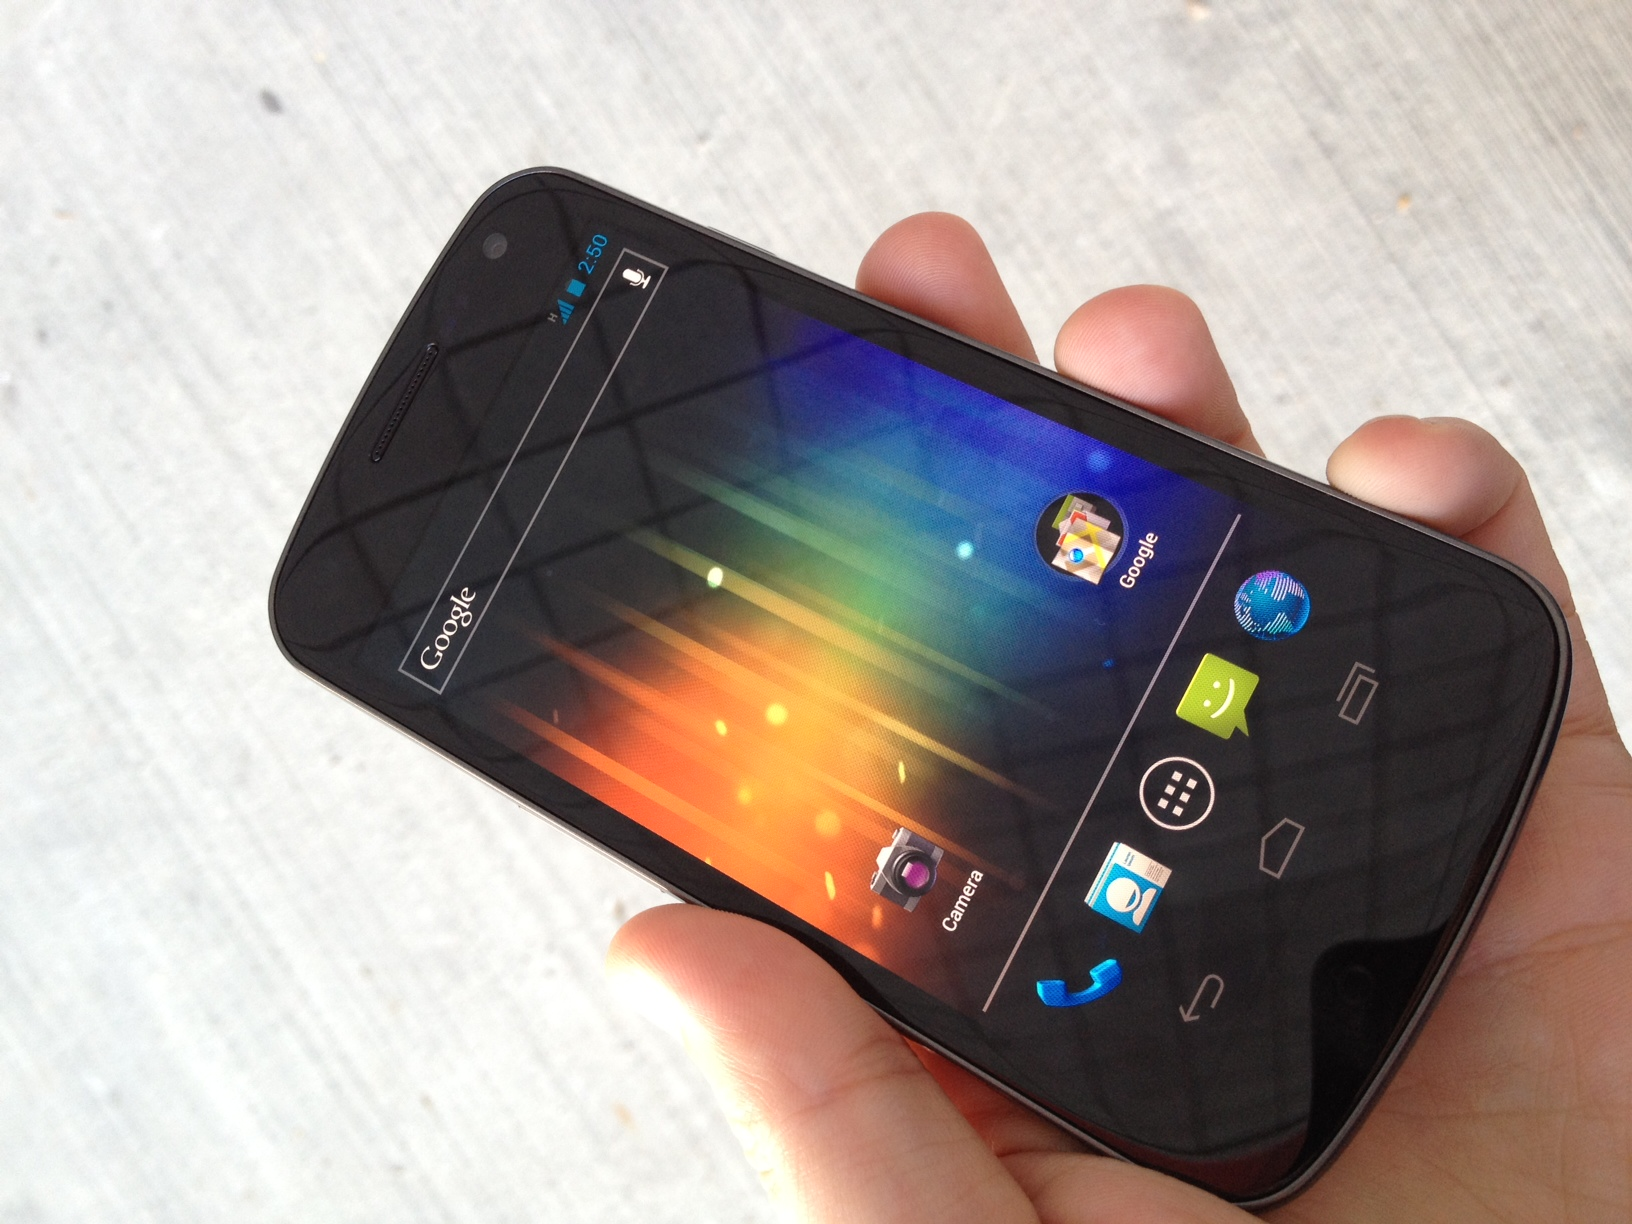 TNW goes hands-on with the Galaxy Nexus [Photos]